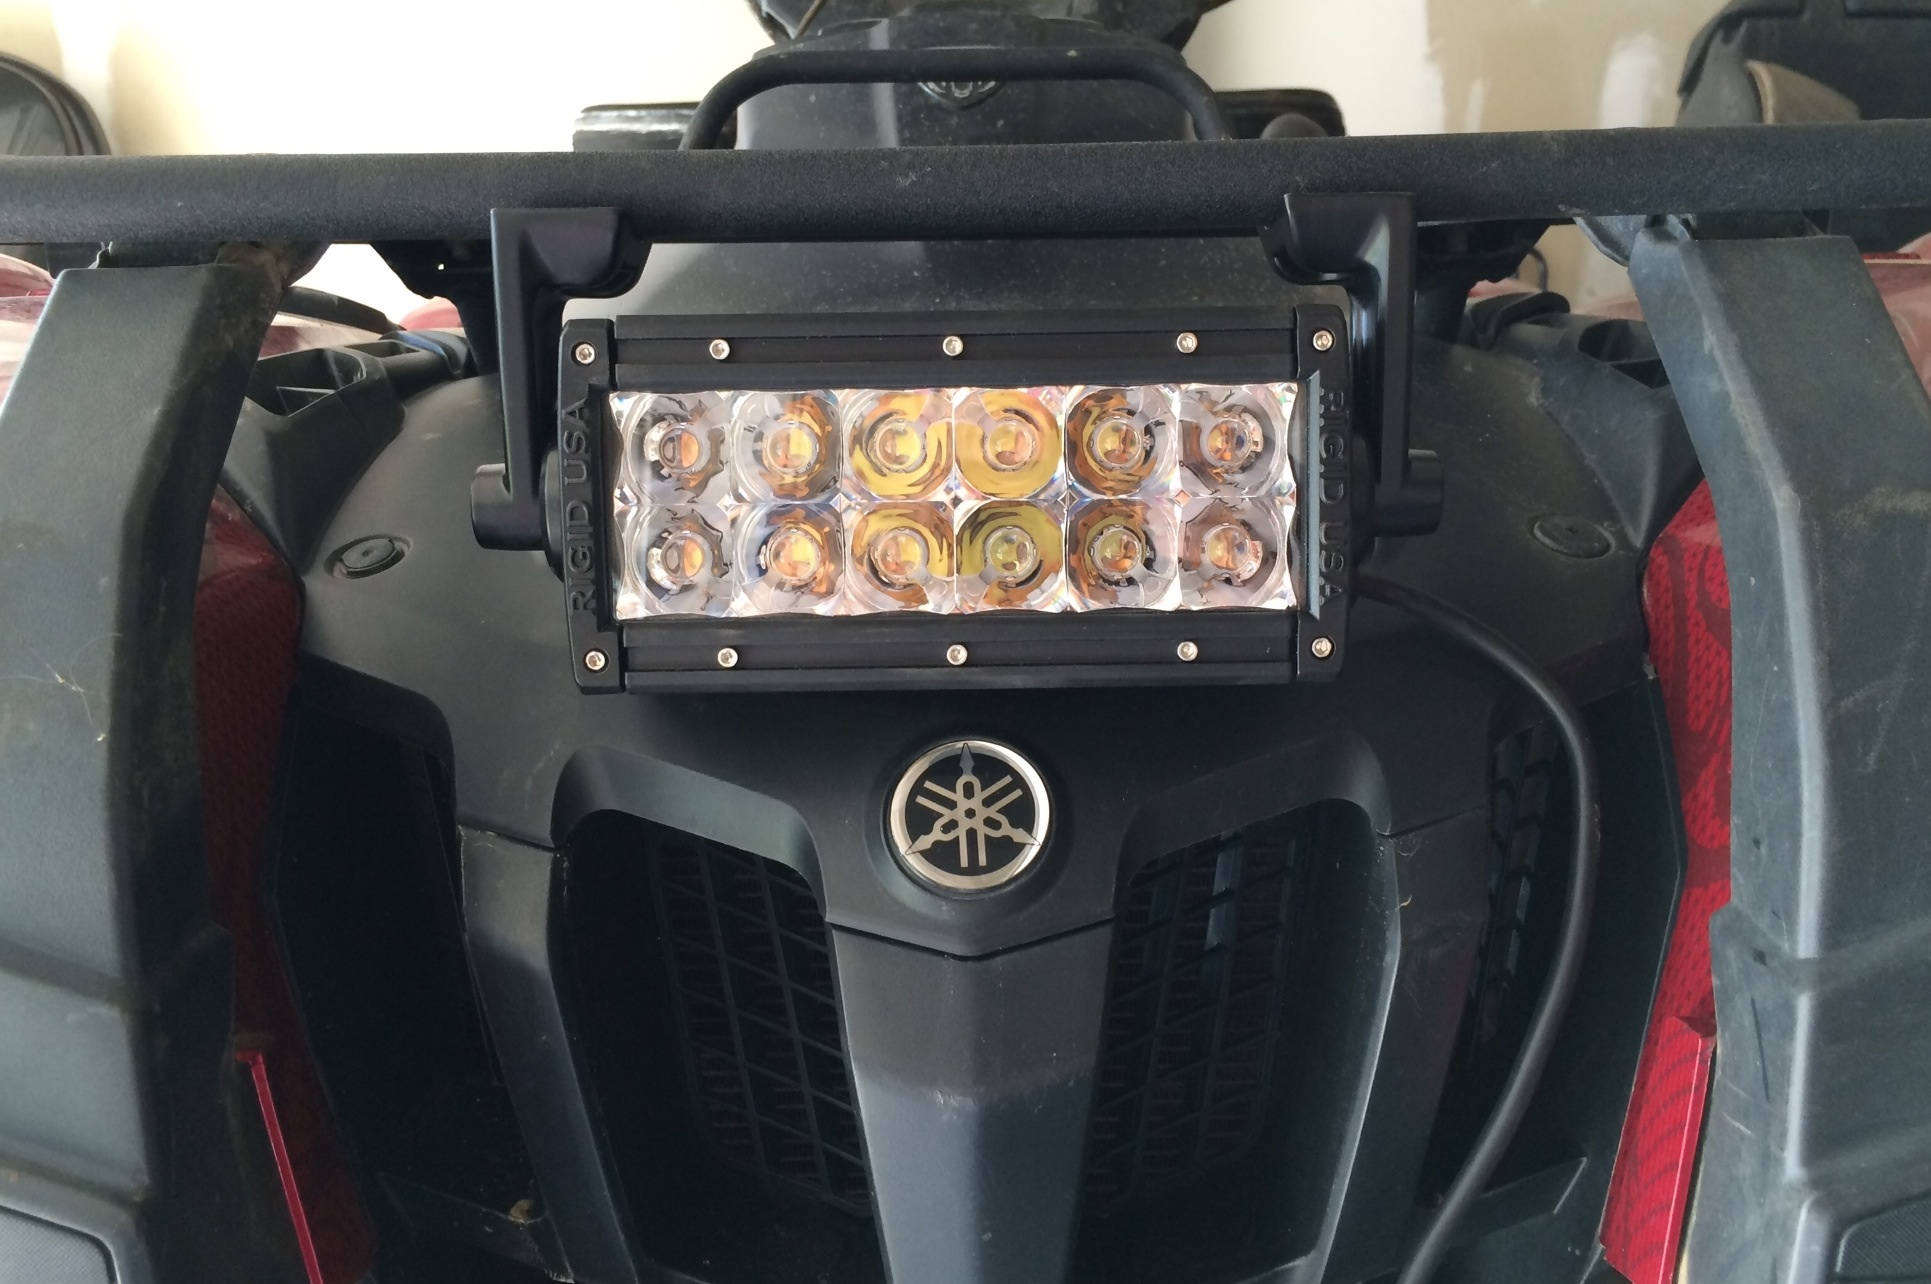 Rigid led lightbar placement. - Yamaha Grizzly ATV Forum